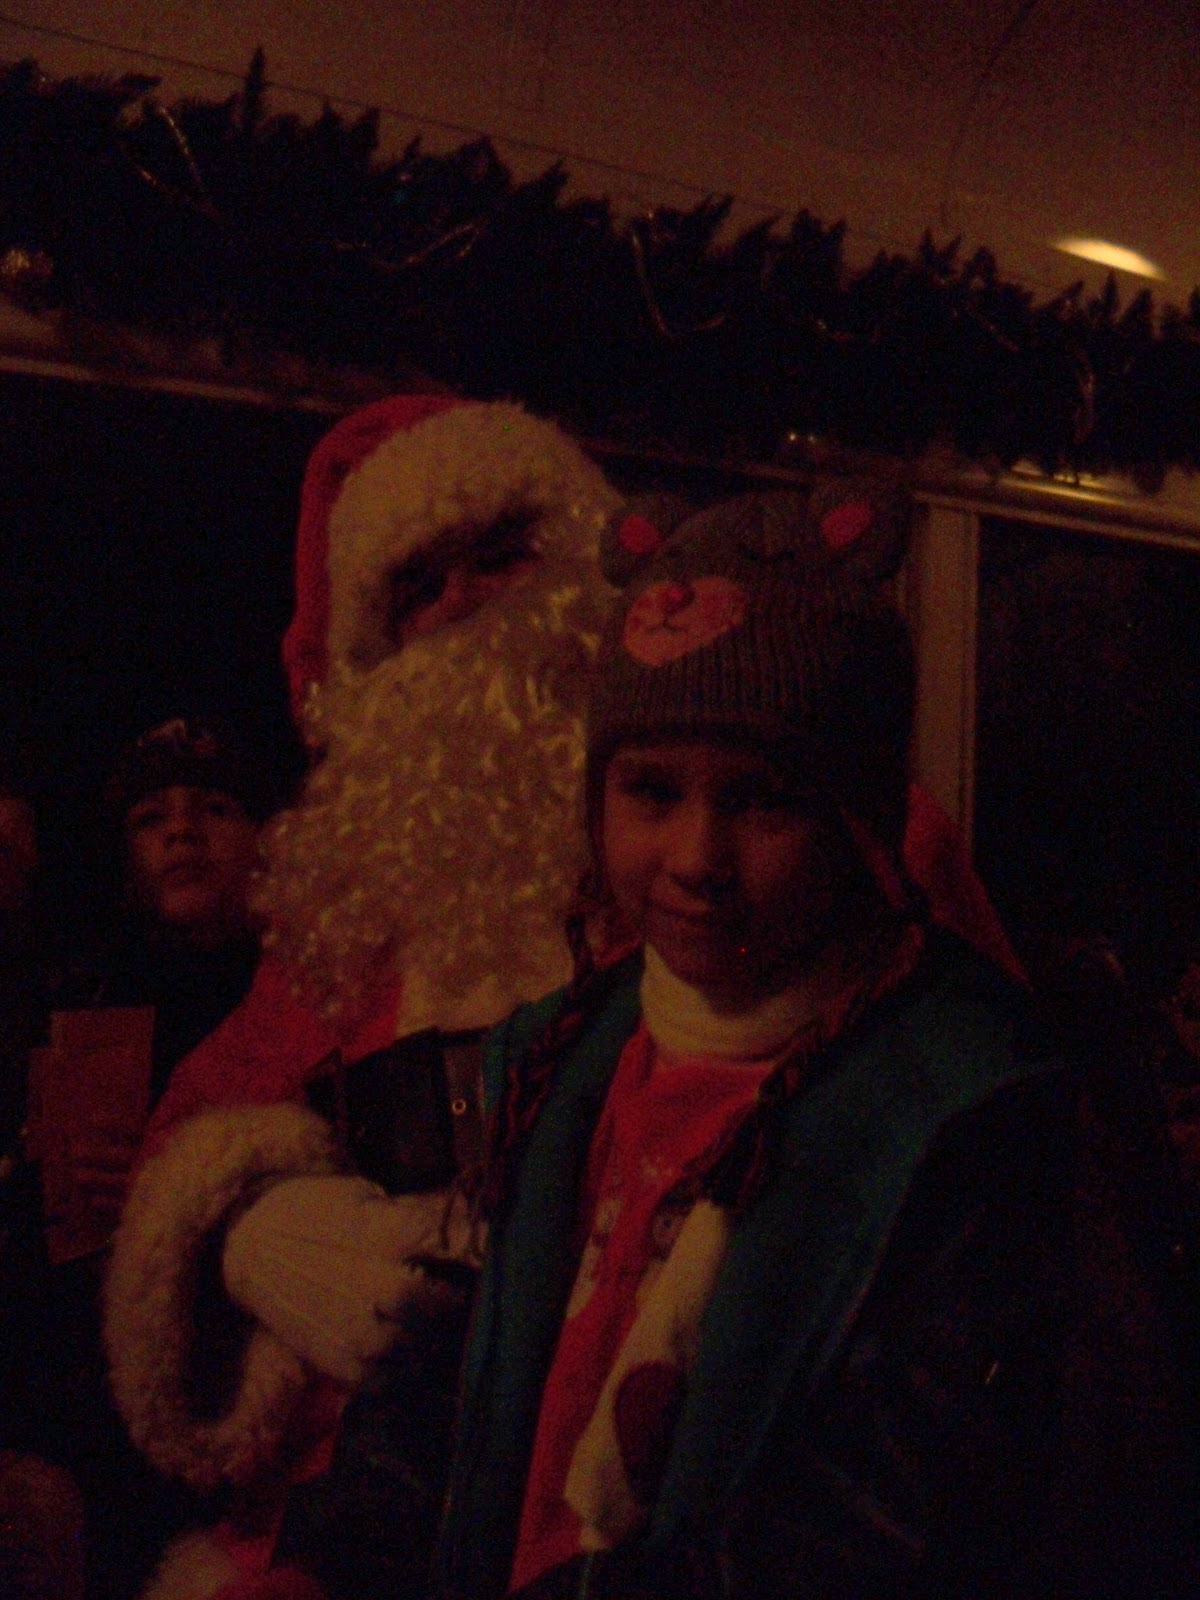 Polar Express Christmas Train 2011 - 115_1003.JPG